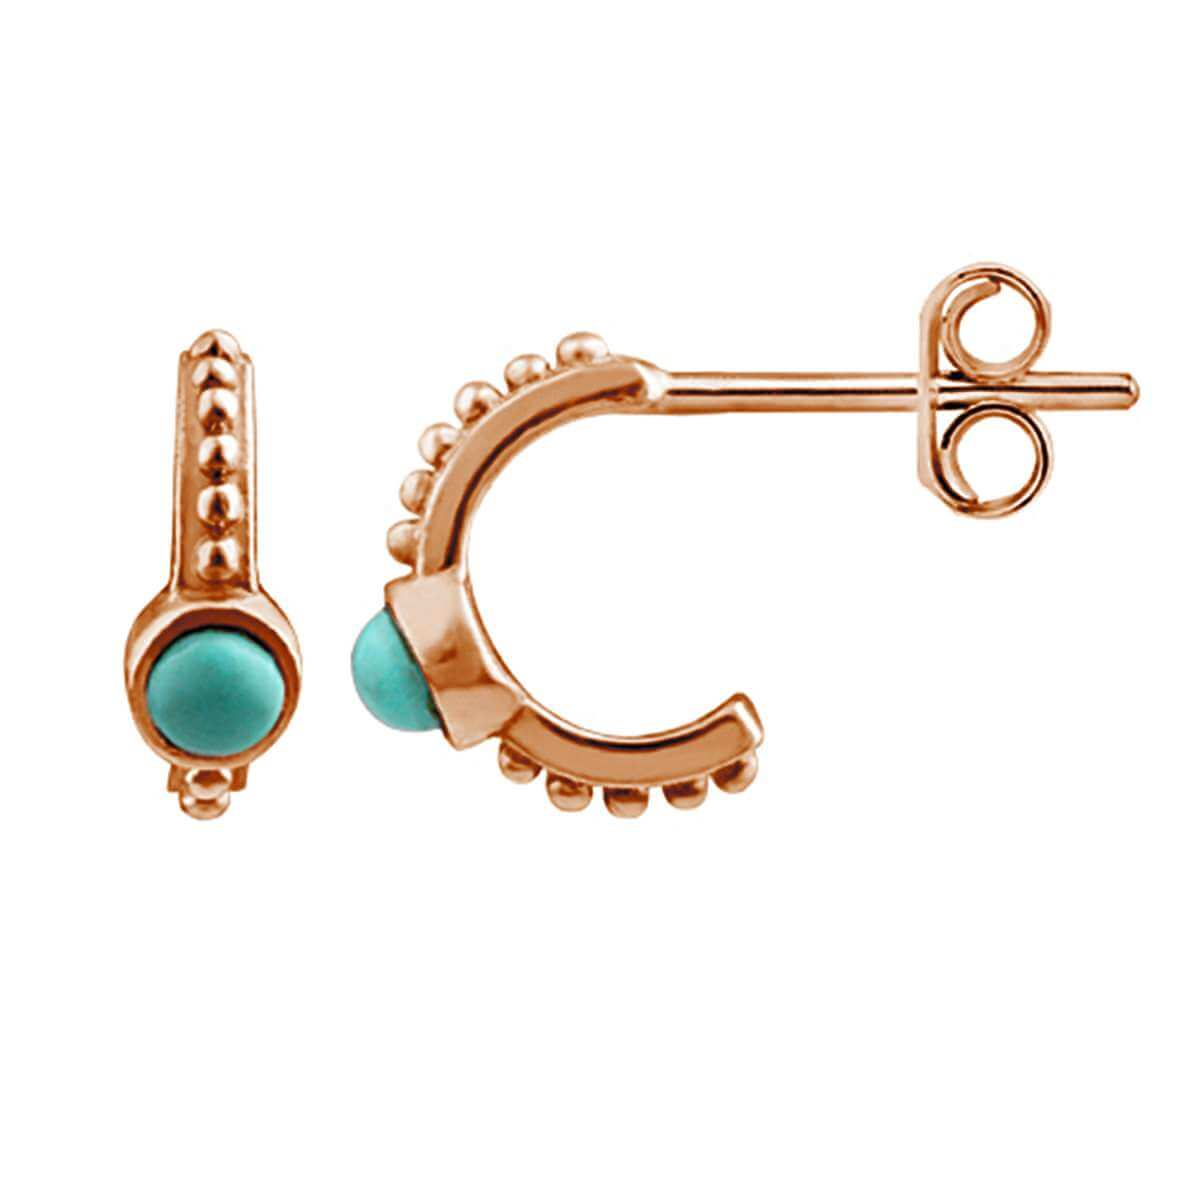 Rose Gold Plated Sterling Silver Faux Turquoise Stud Earrings